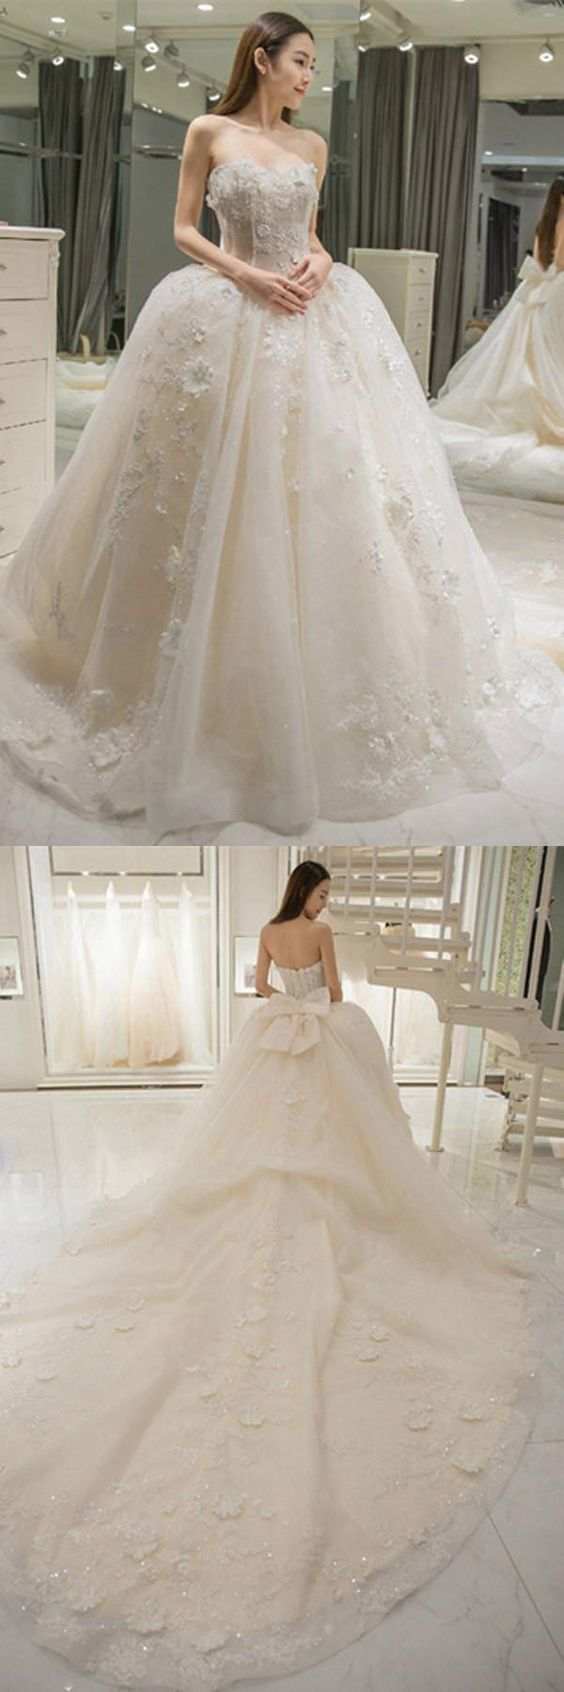 Sweetheart Appliques Bowknot A-Line Floor-Length Wedding Dress